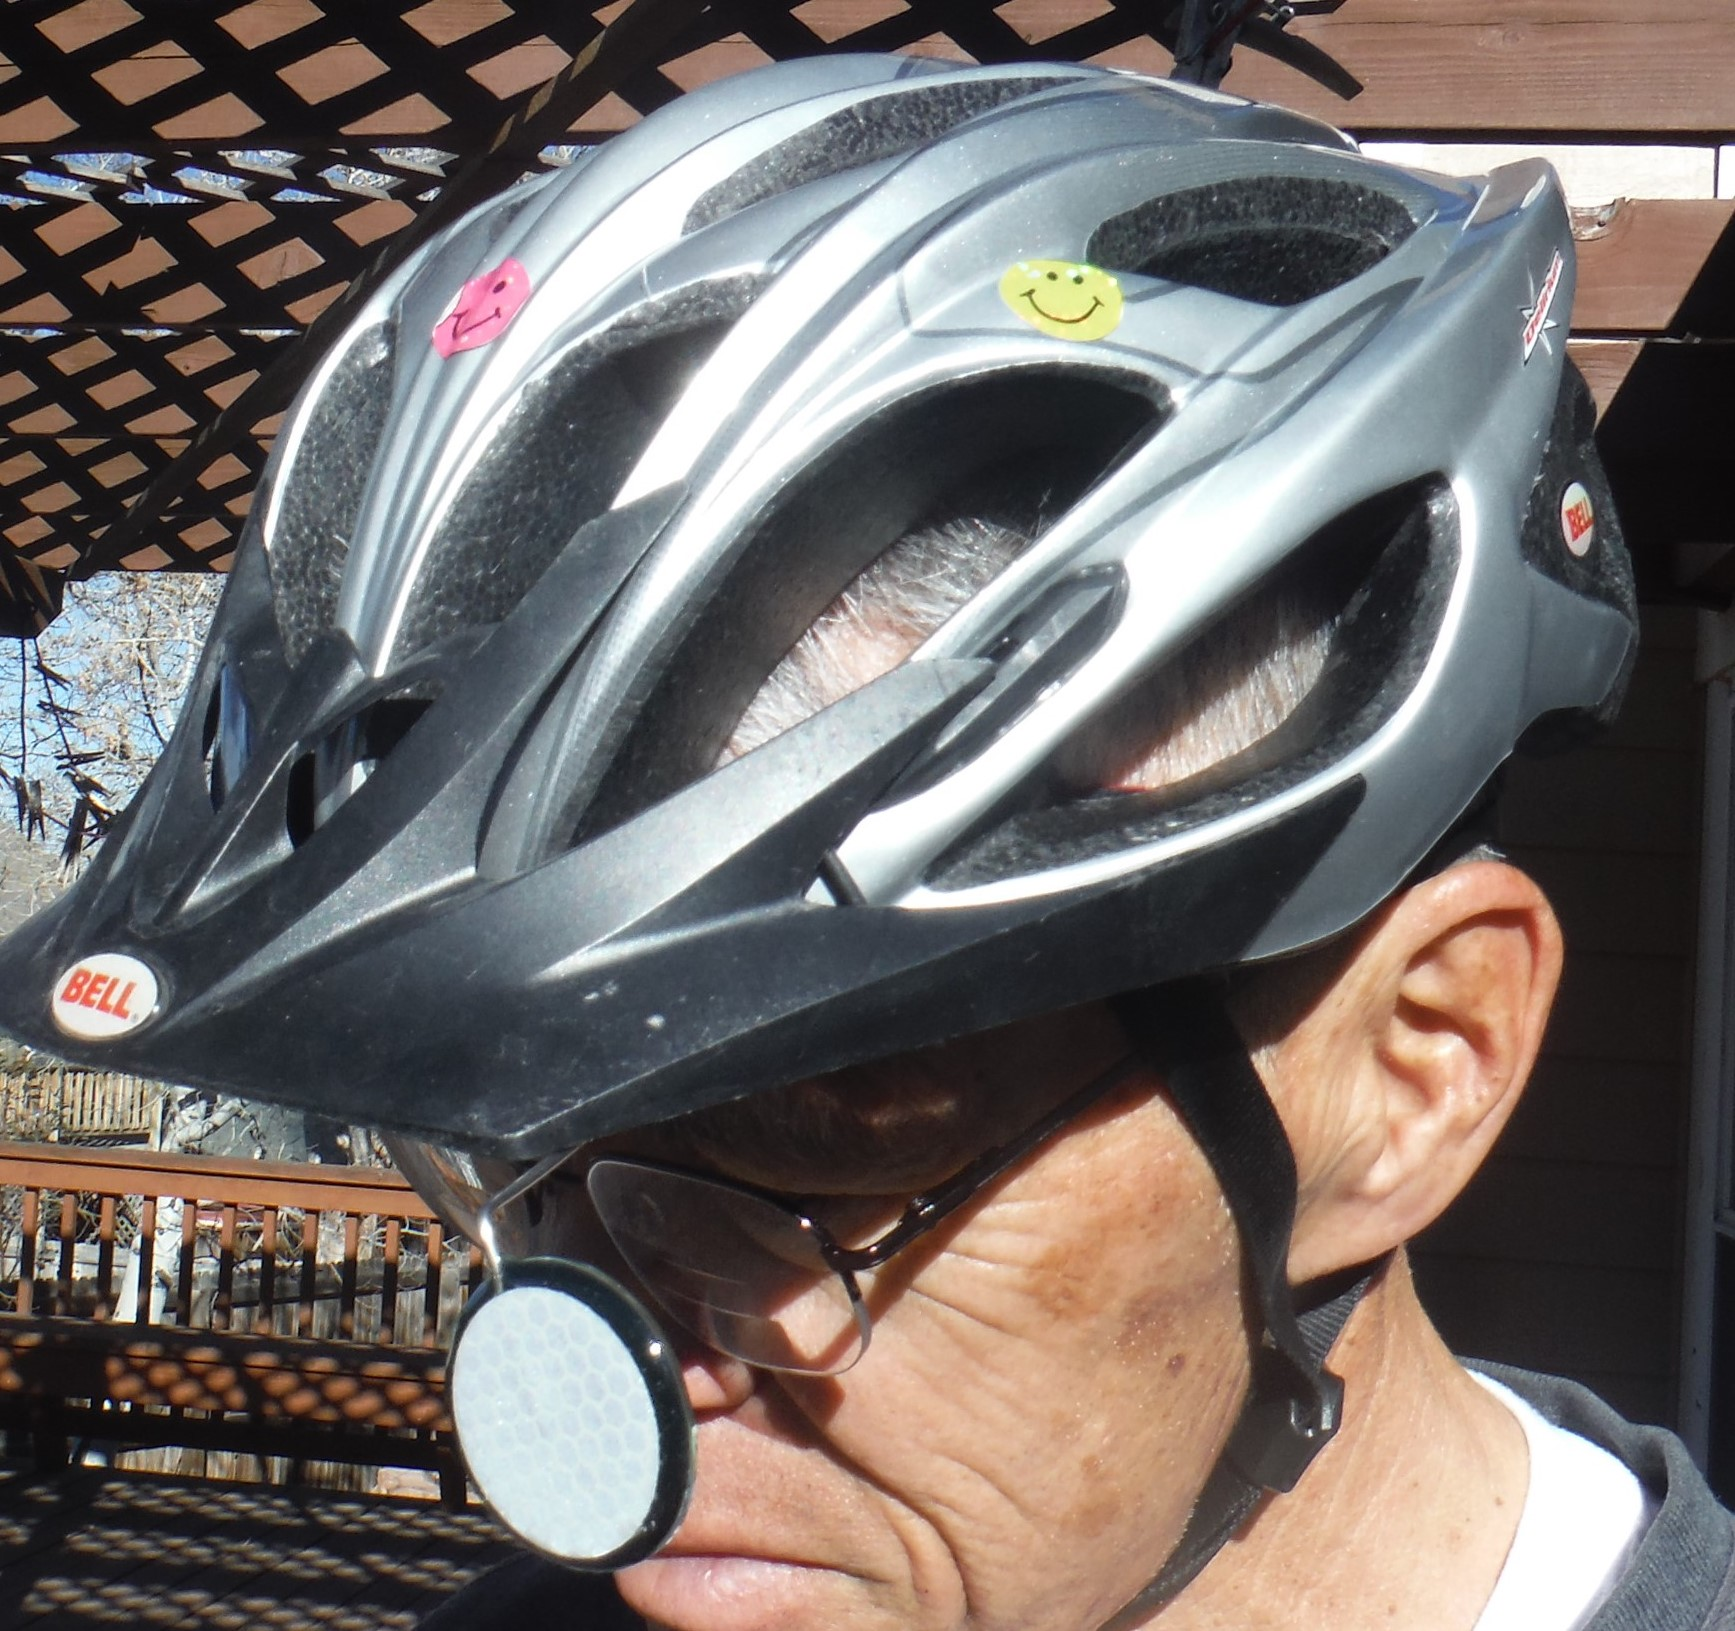 Tiger Eye Helmet-Mounted Bicycle Mirror, Part I